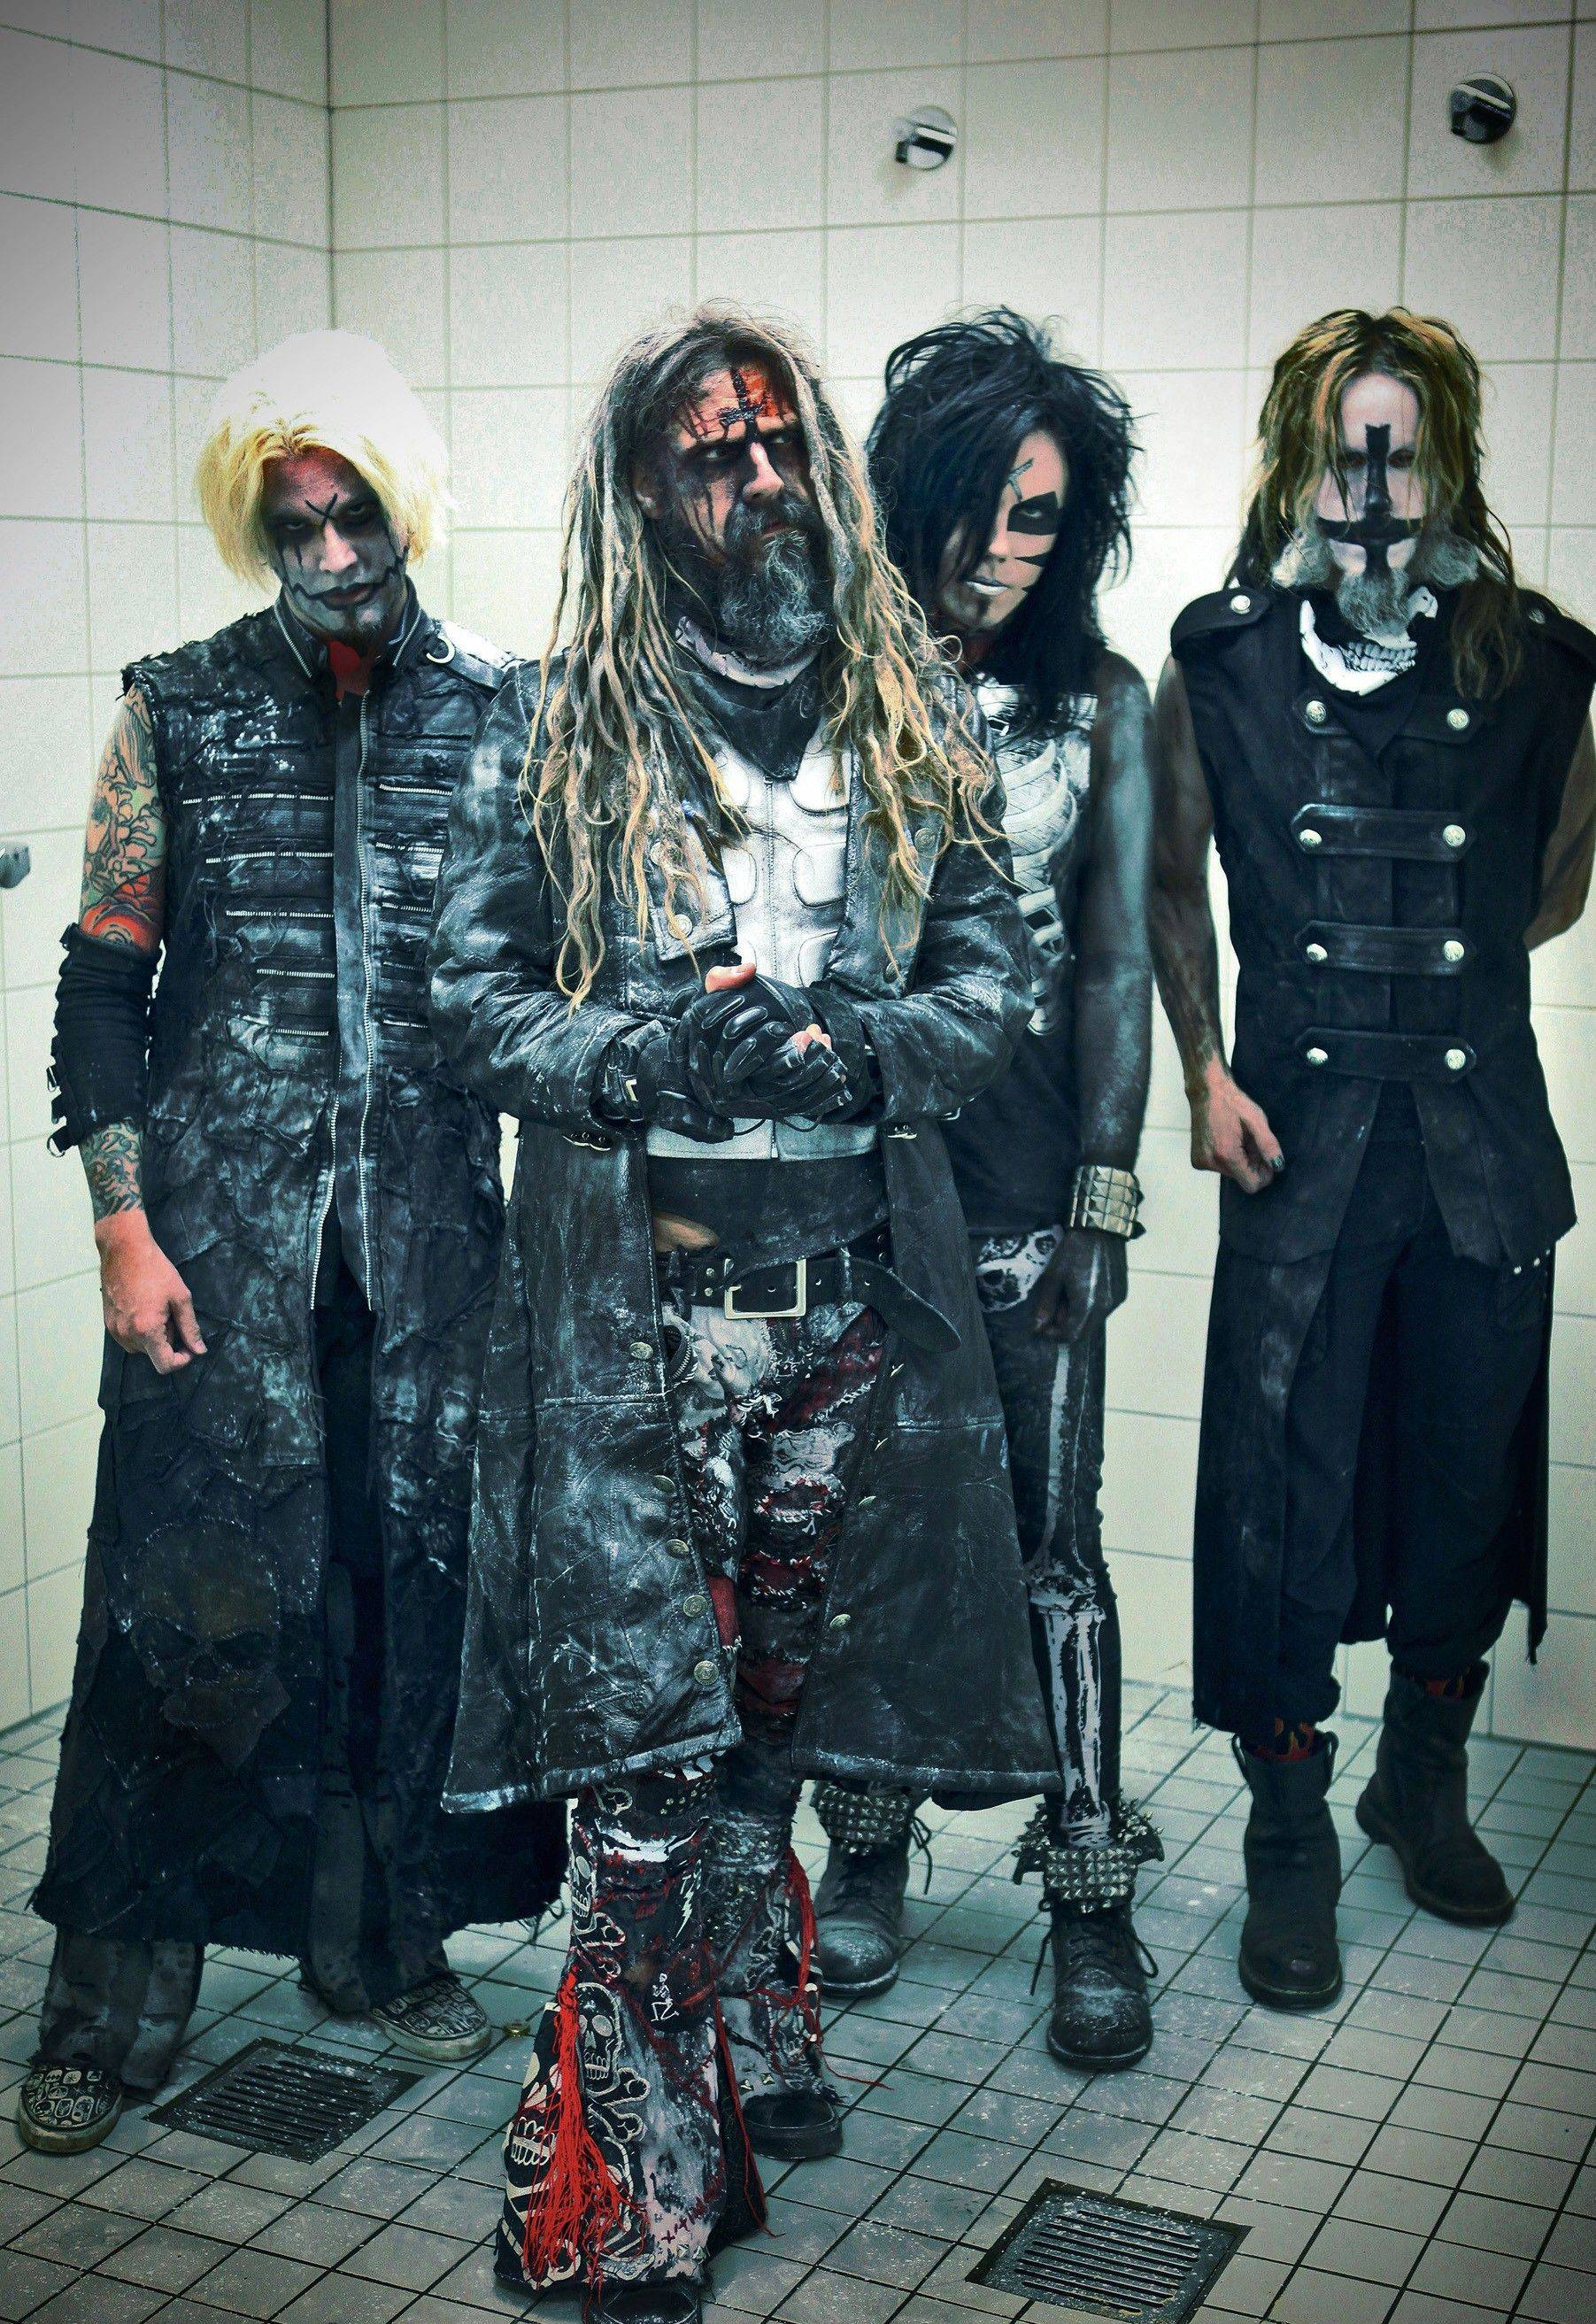 Rob Zombie will be a co-headliner alongside Marilyn Manson on Thursday, Oct. 11, when the Twins of Evil Tour stops at the Allstate Arena in Rosemont. Pictured left to right are band members John5, Zombie, Piggy D and Ginger Fish.